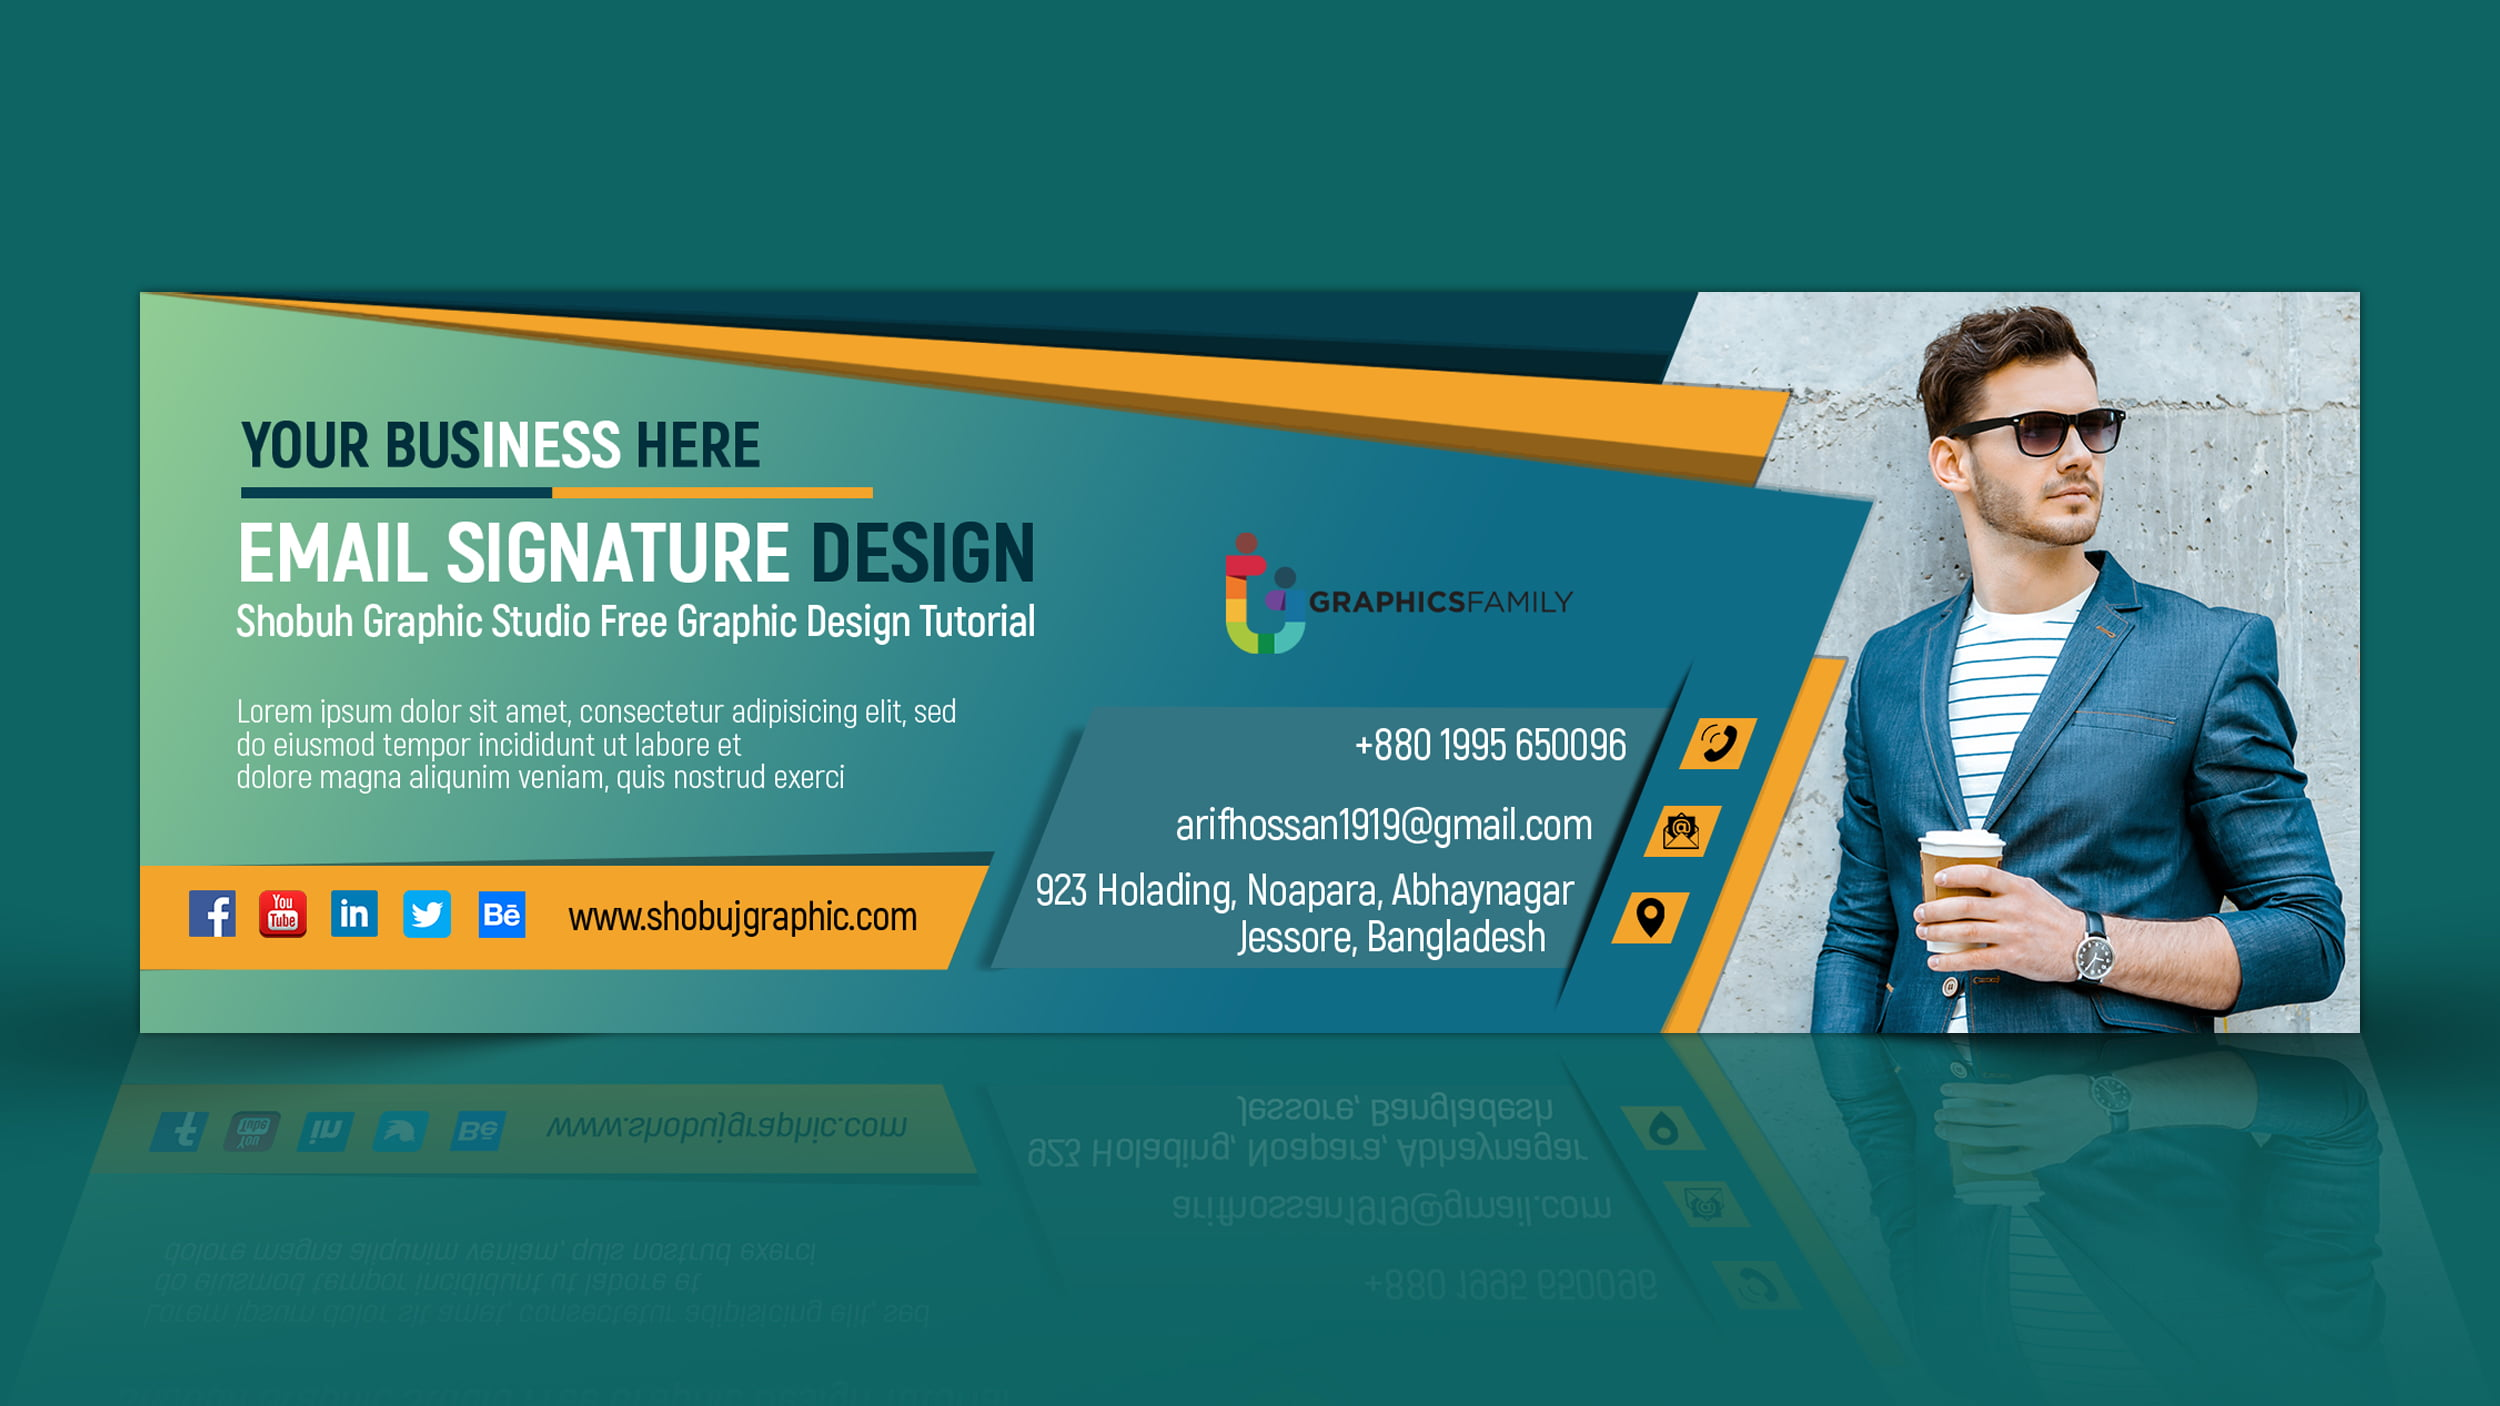 email signature design in flat style